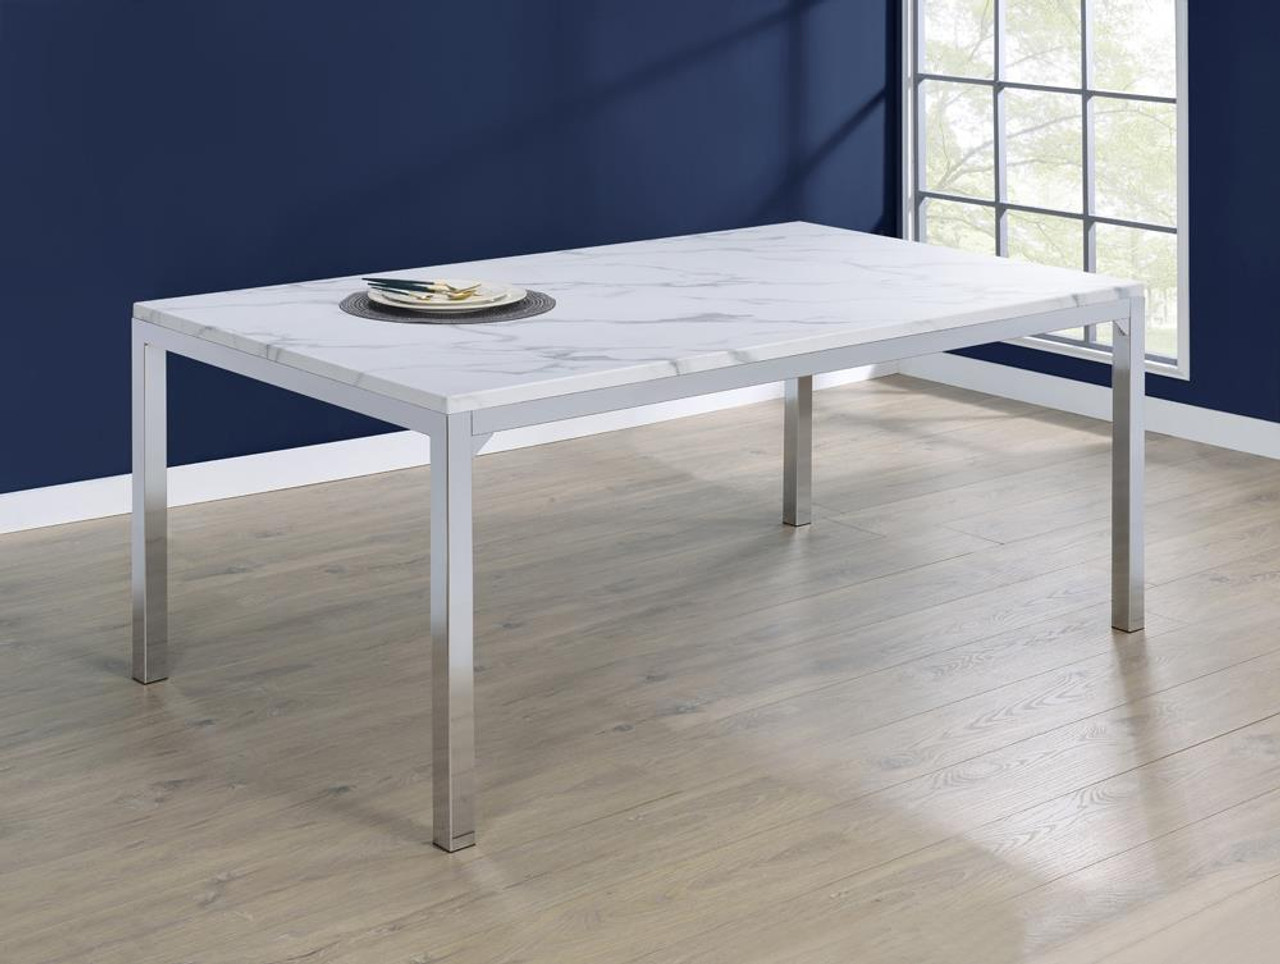 The Athena Rectangle Dining Table With Marble Top Chrome 110101 Available At Nashco Furniture And Mattress Serving Nashville Tn